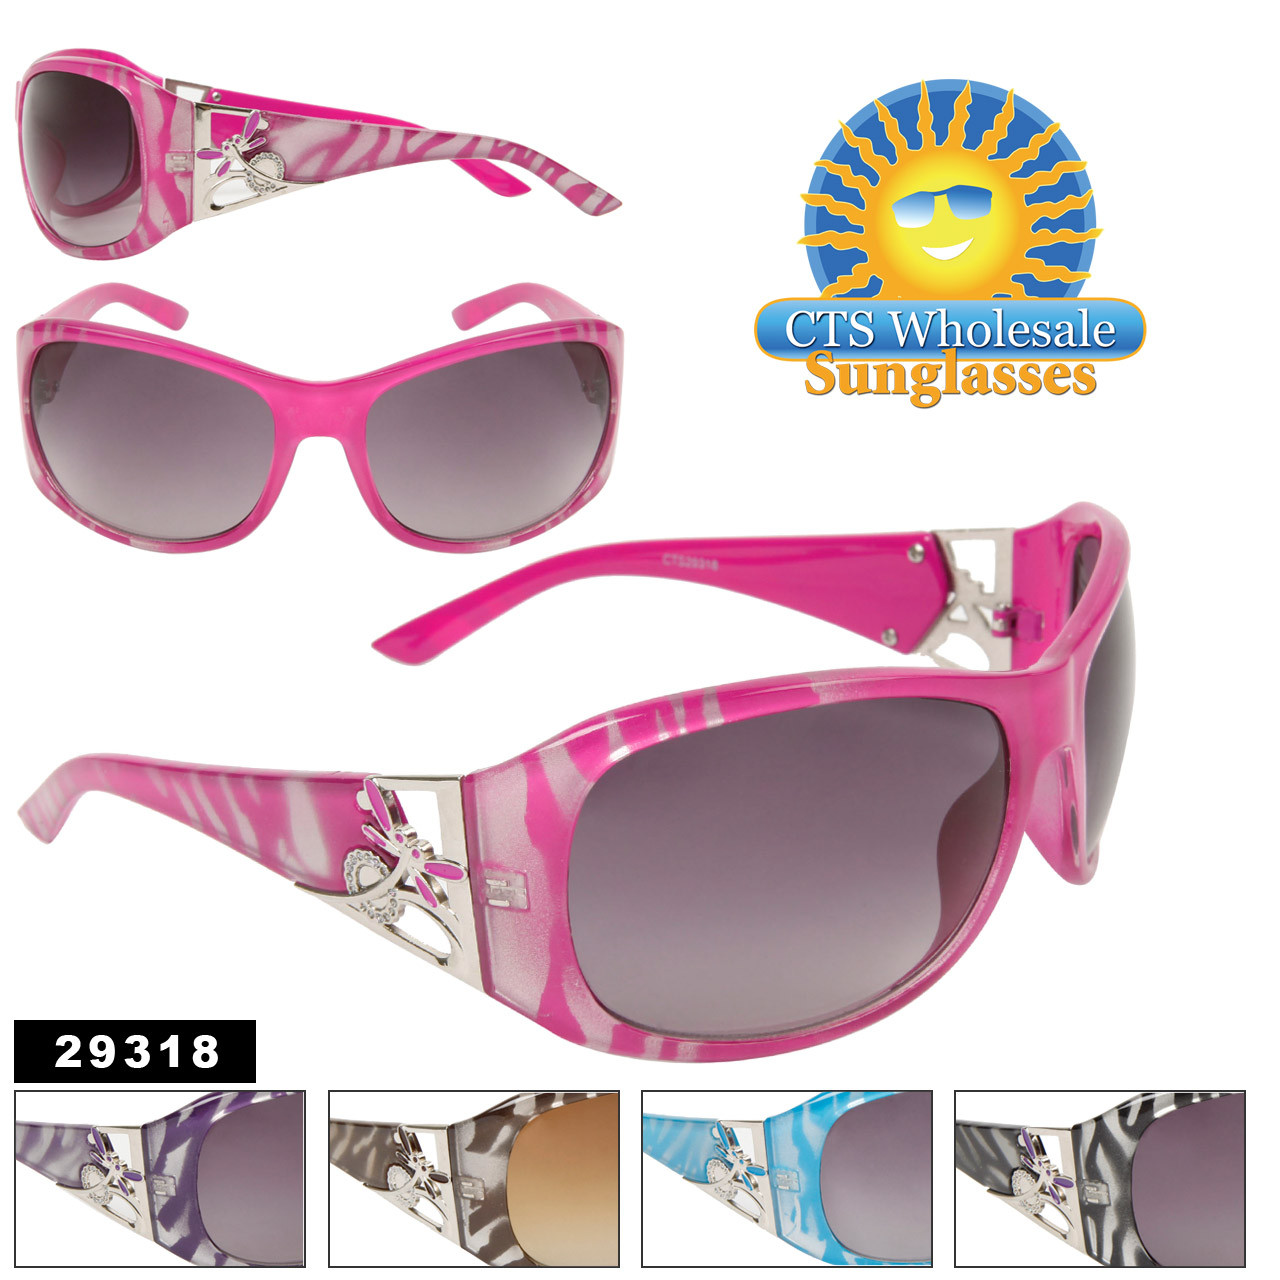 Fashion Sunglasses with Dragon Fly Accents!